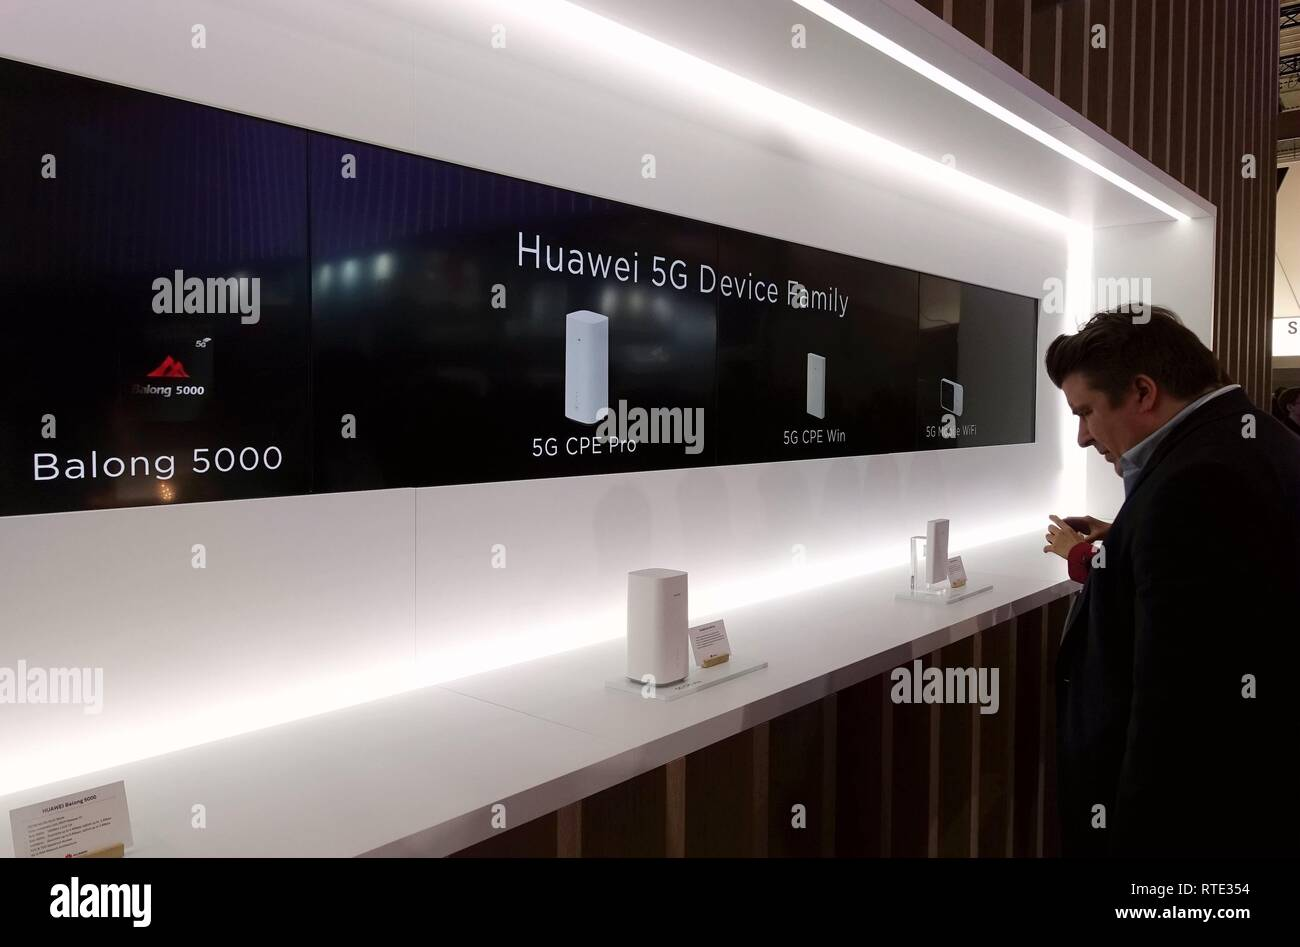 Barcelona, Spain. 26th Feb, 2019. China's Huawei presents 5G devices at Mobile World Congress (MWC 2019) in Barcelona, Spain, Feb. 26, 2019. The four-day MWC 2019 presents the newest 5G products of the high-tech giants from around the world. Credit: Guo Qiuda/Xinhua/Alamy Live News Stock Photo